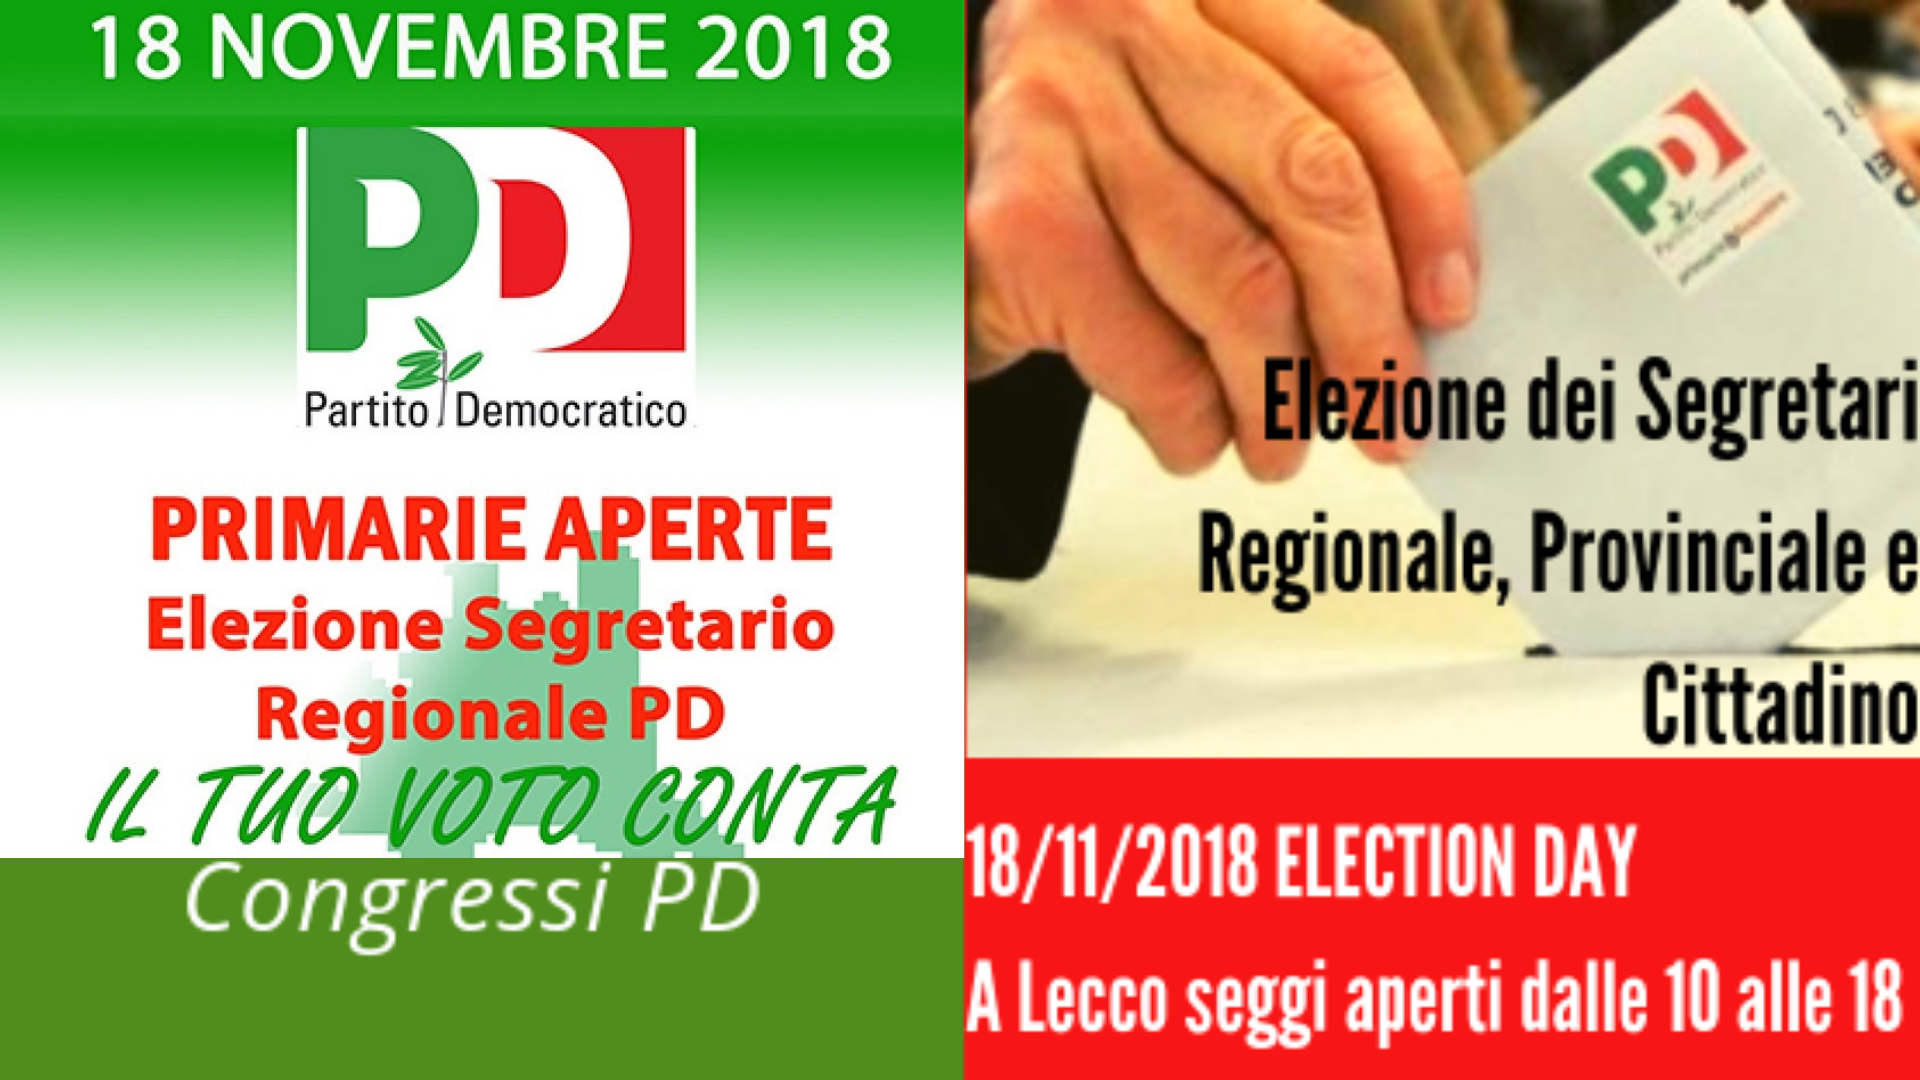 https://lecconews.news/wp/wp-content/uploads/2018/11/post-evento-voto.png